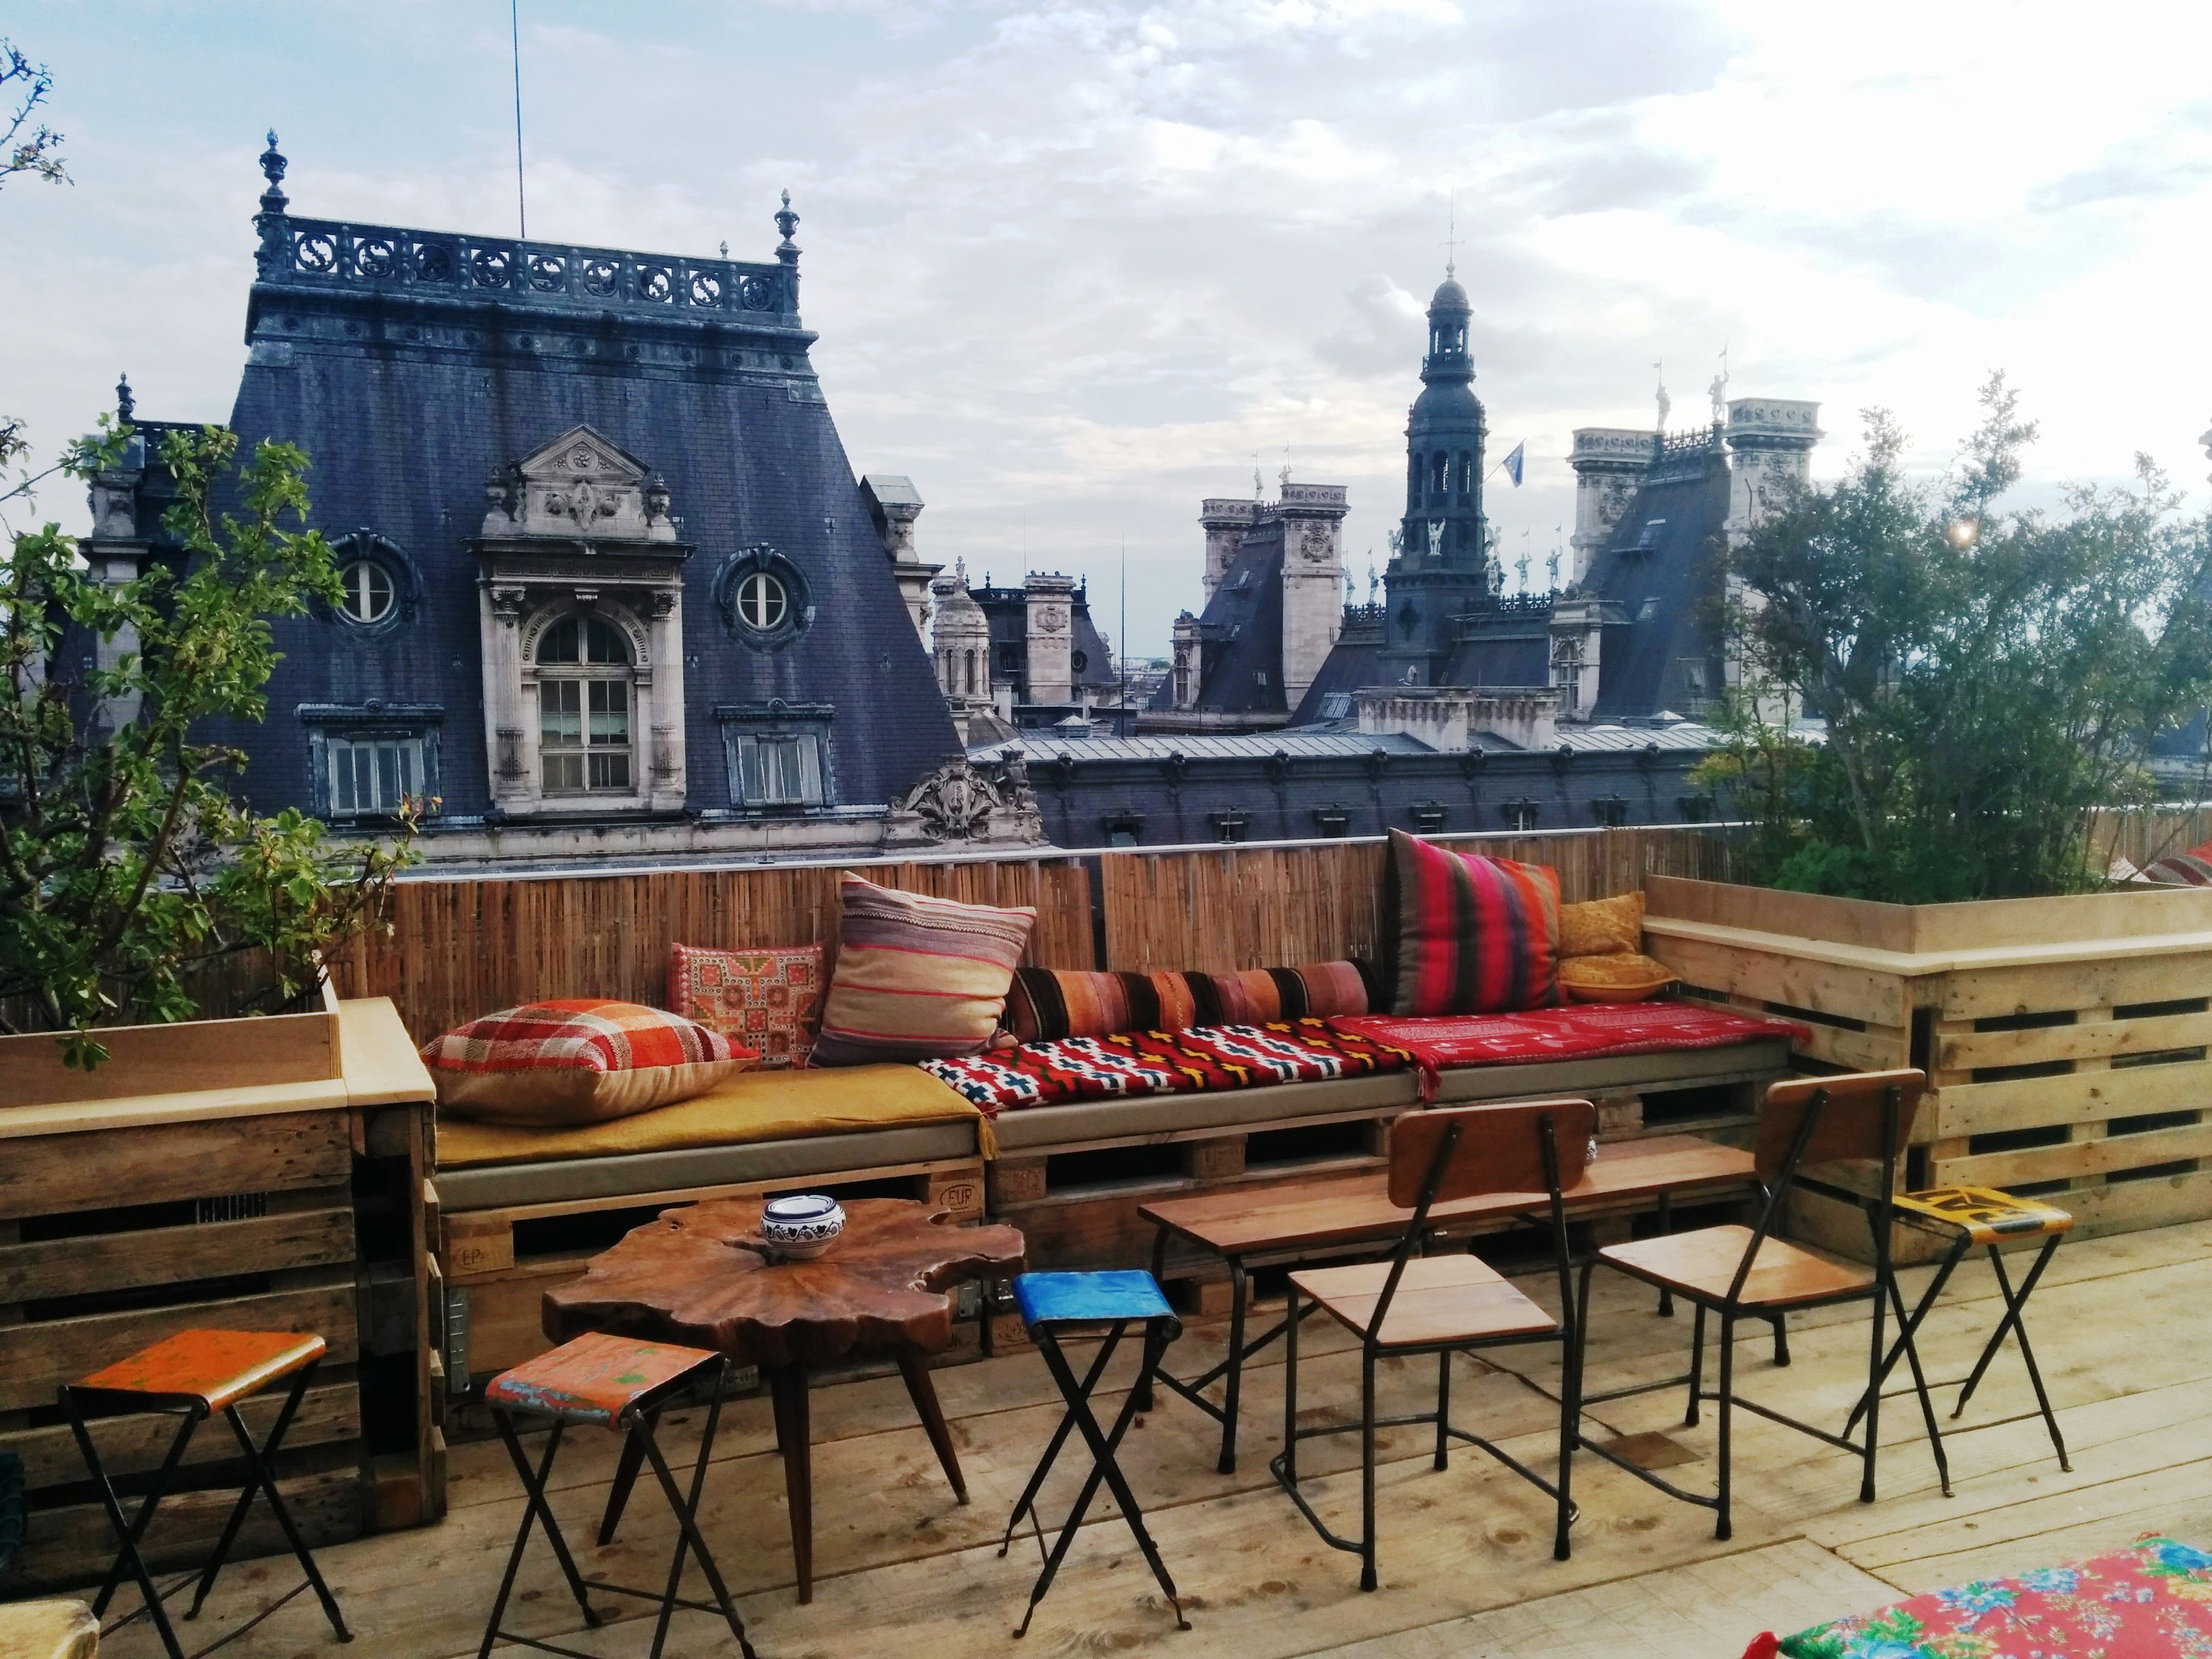 Bar Terrasse Montparnasse Paris Do It Like The Locals Part 2 T R A V E L Paris